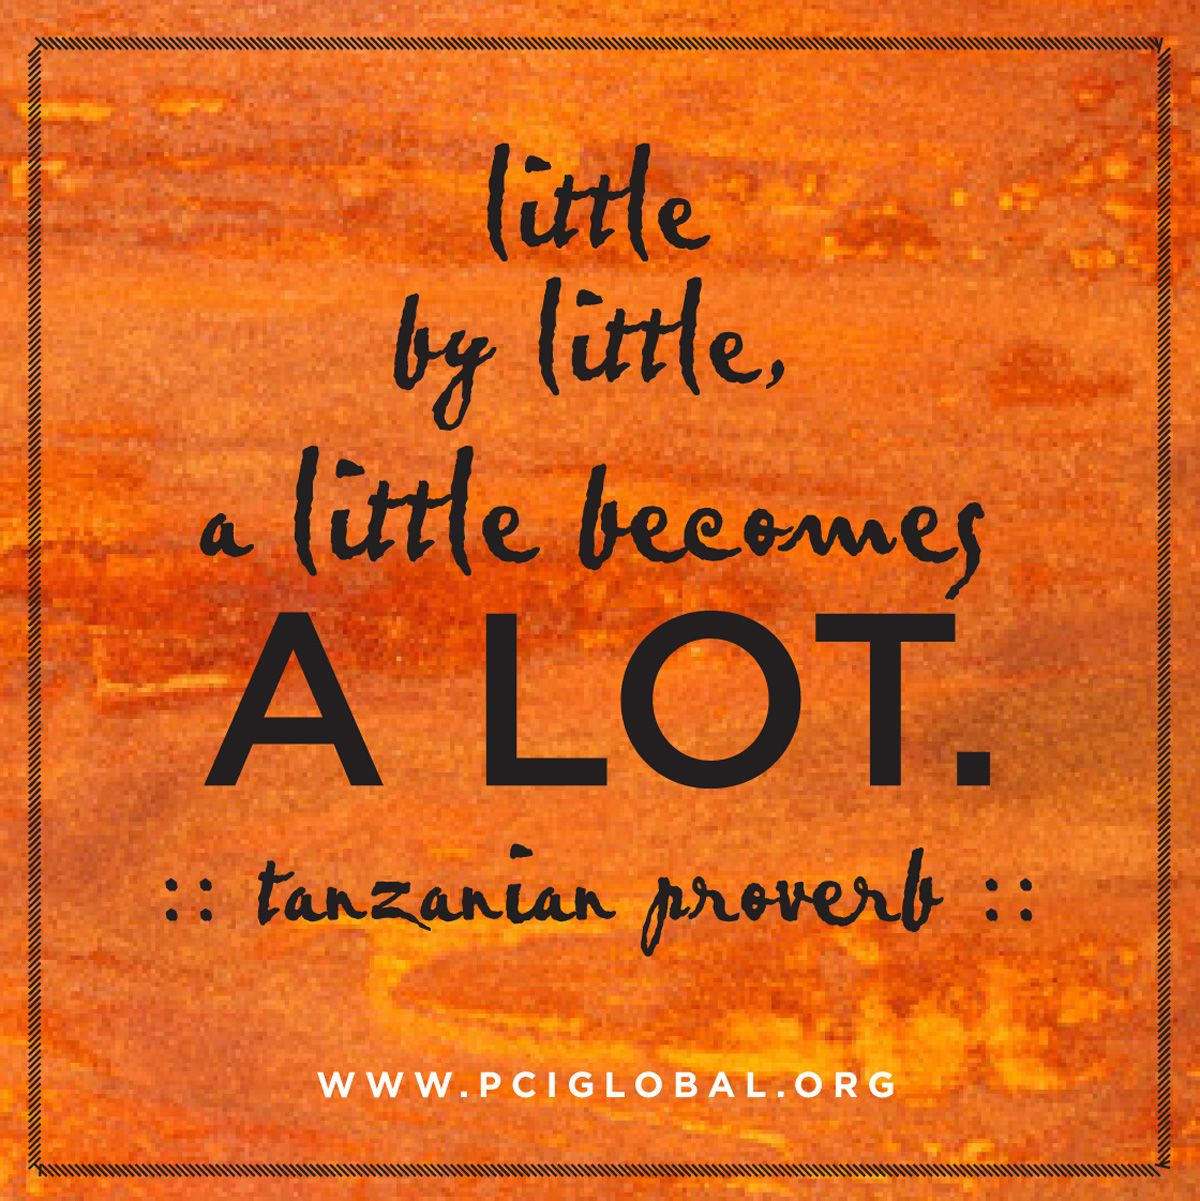 Little By Little A Little Becomes A Lot Tanzanian Proverb